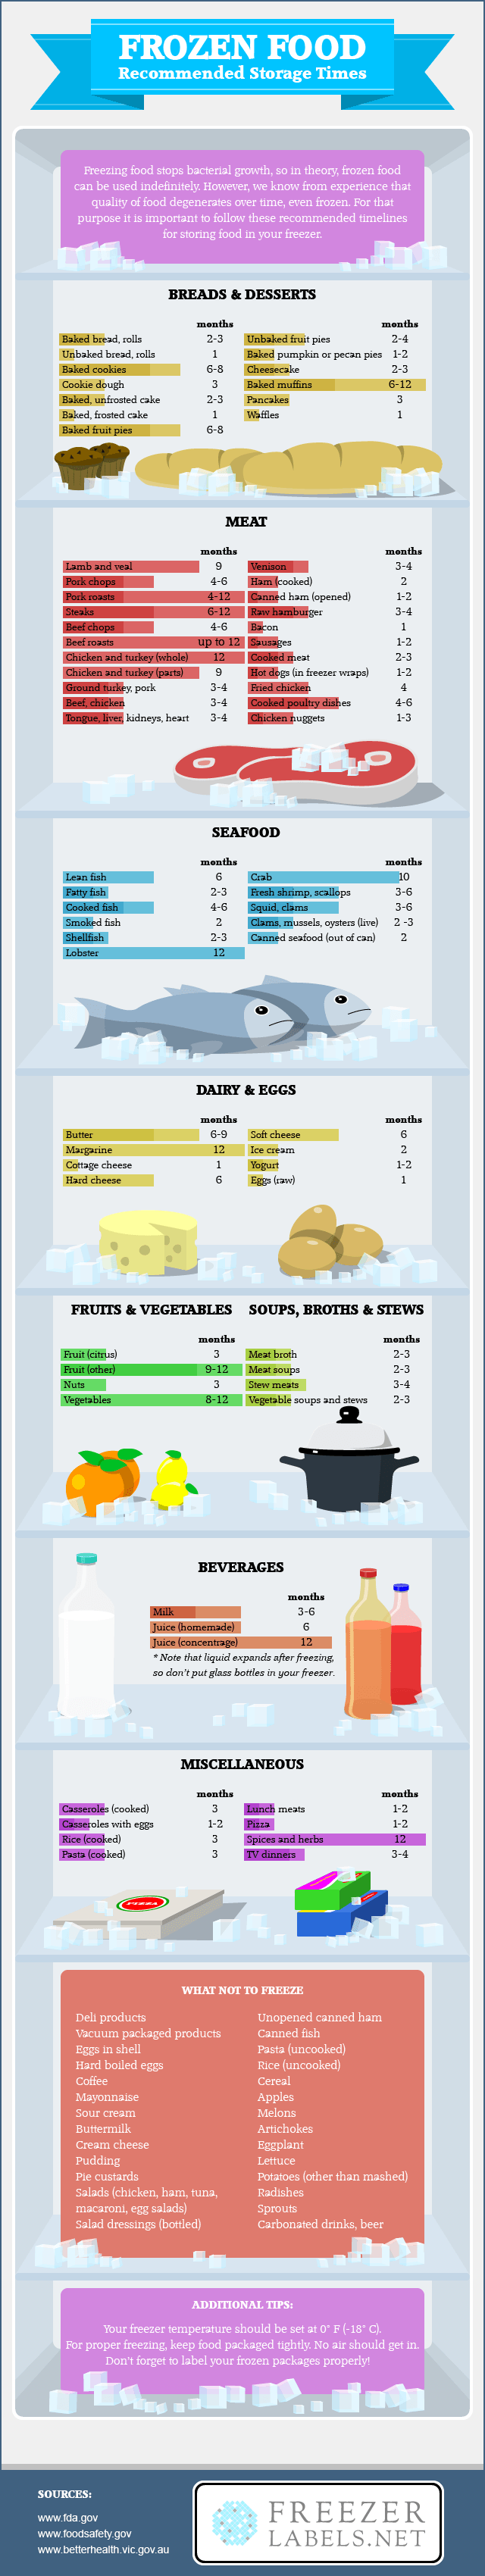 frozen-food-recommended-storage-times-infographic